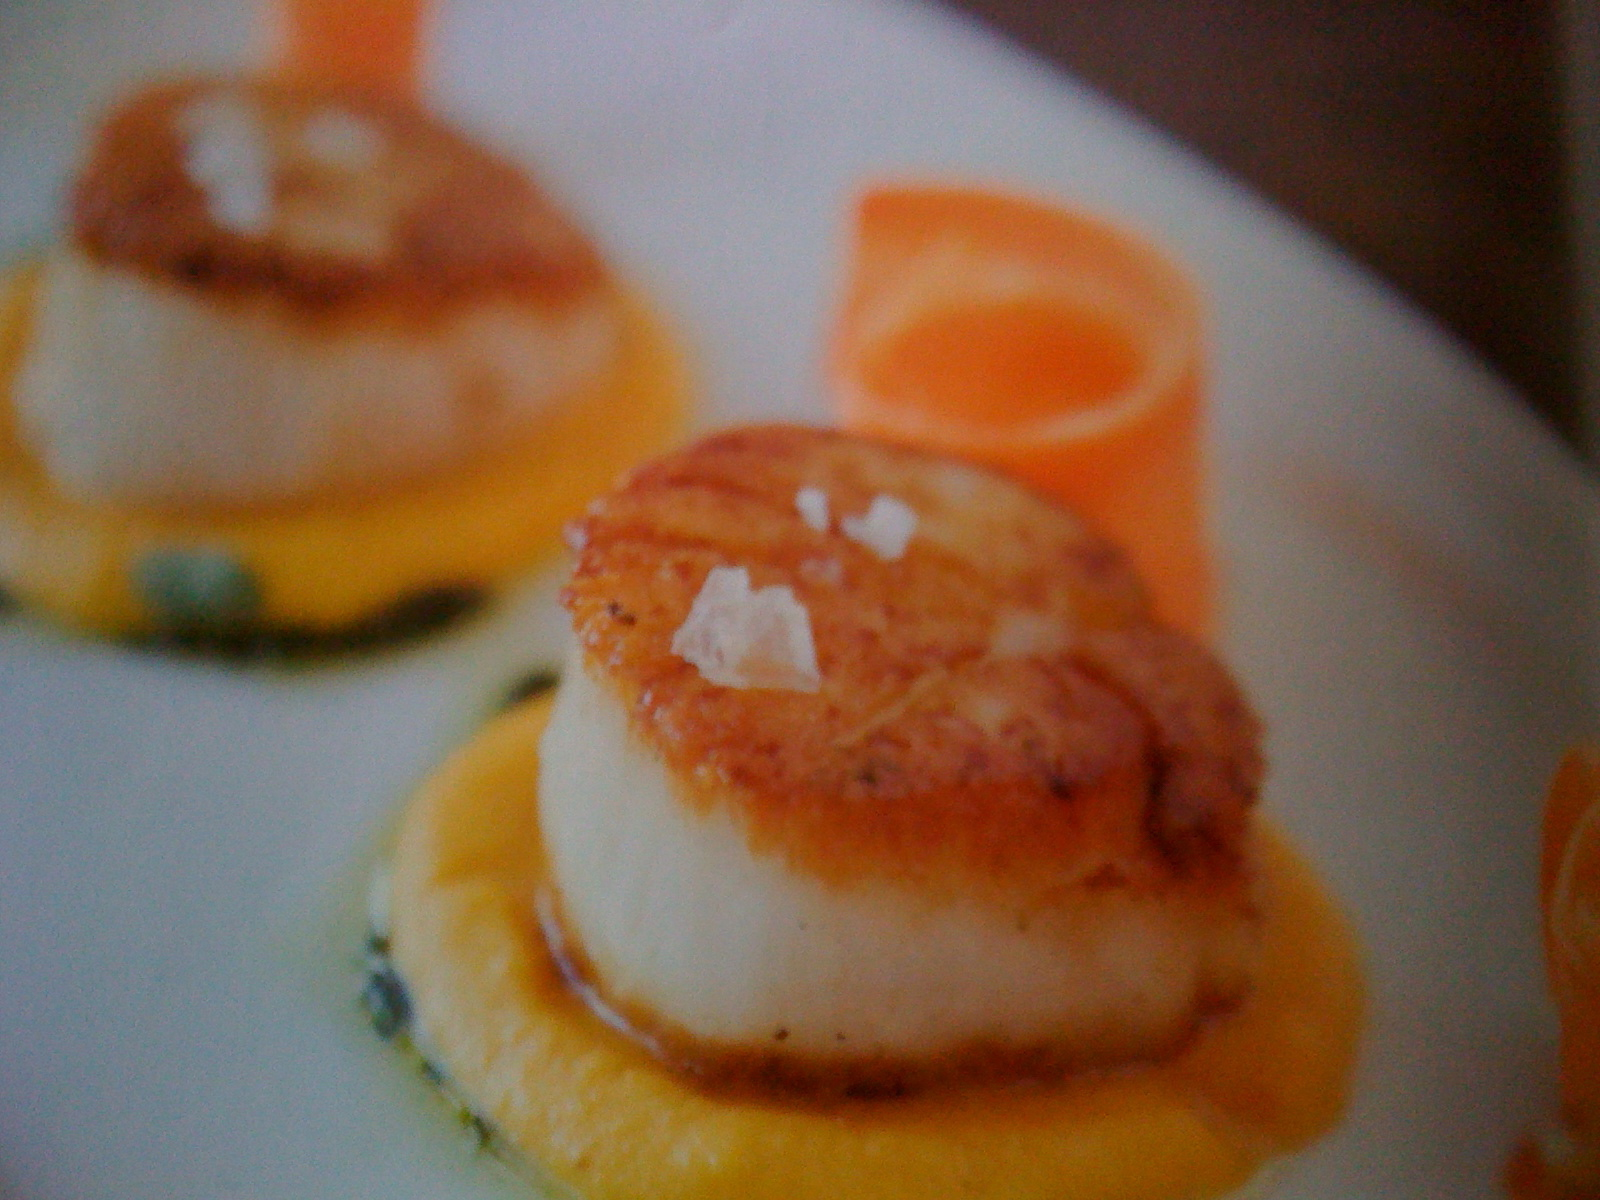 Cooking Becky Selengut: Seared scallops with carrot cream | EAT! The ...